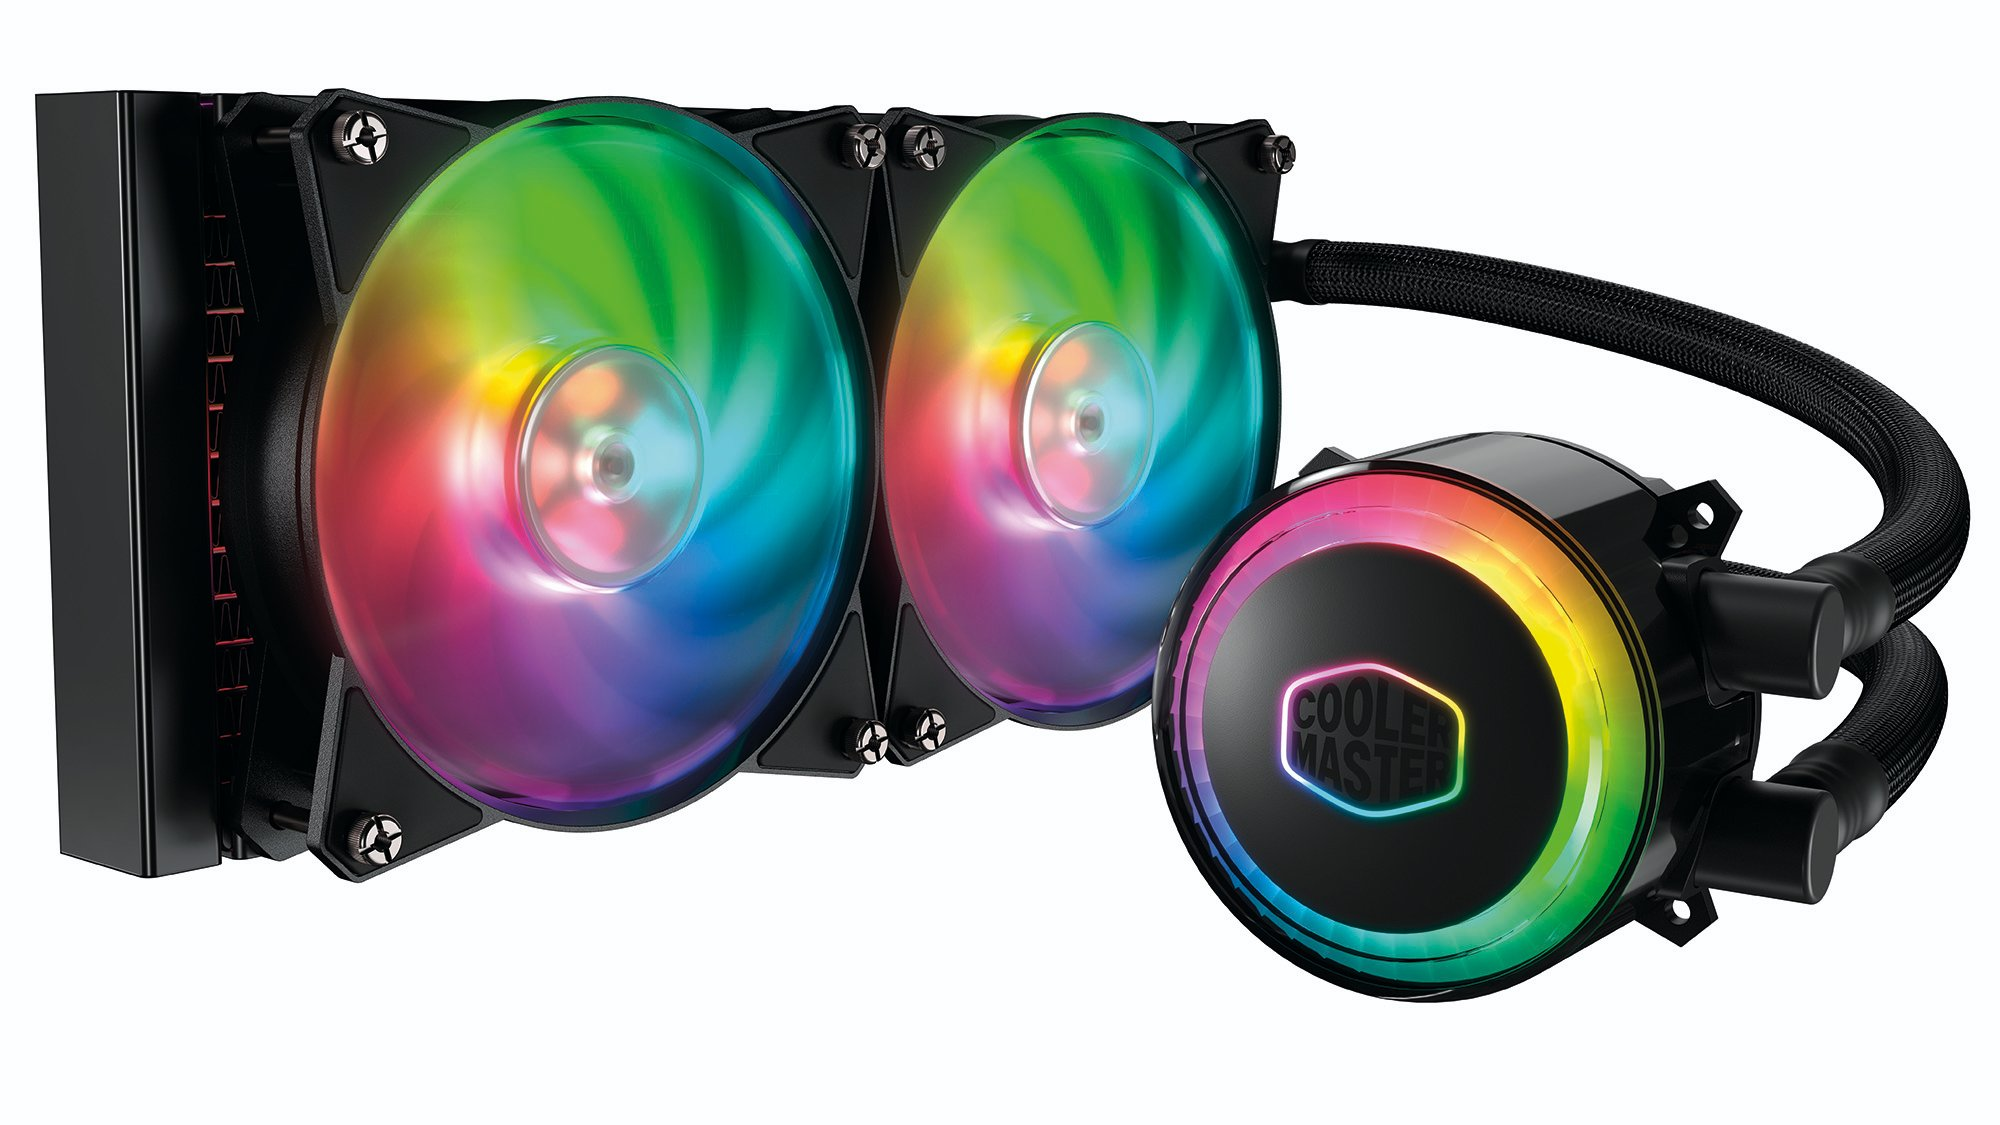 Cooler Master MasterLiquid ML240R RGB review: High performance and